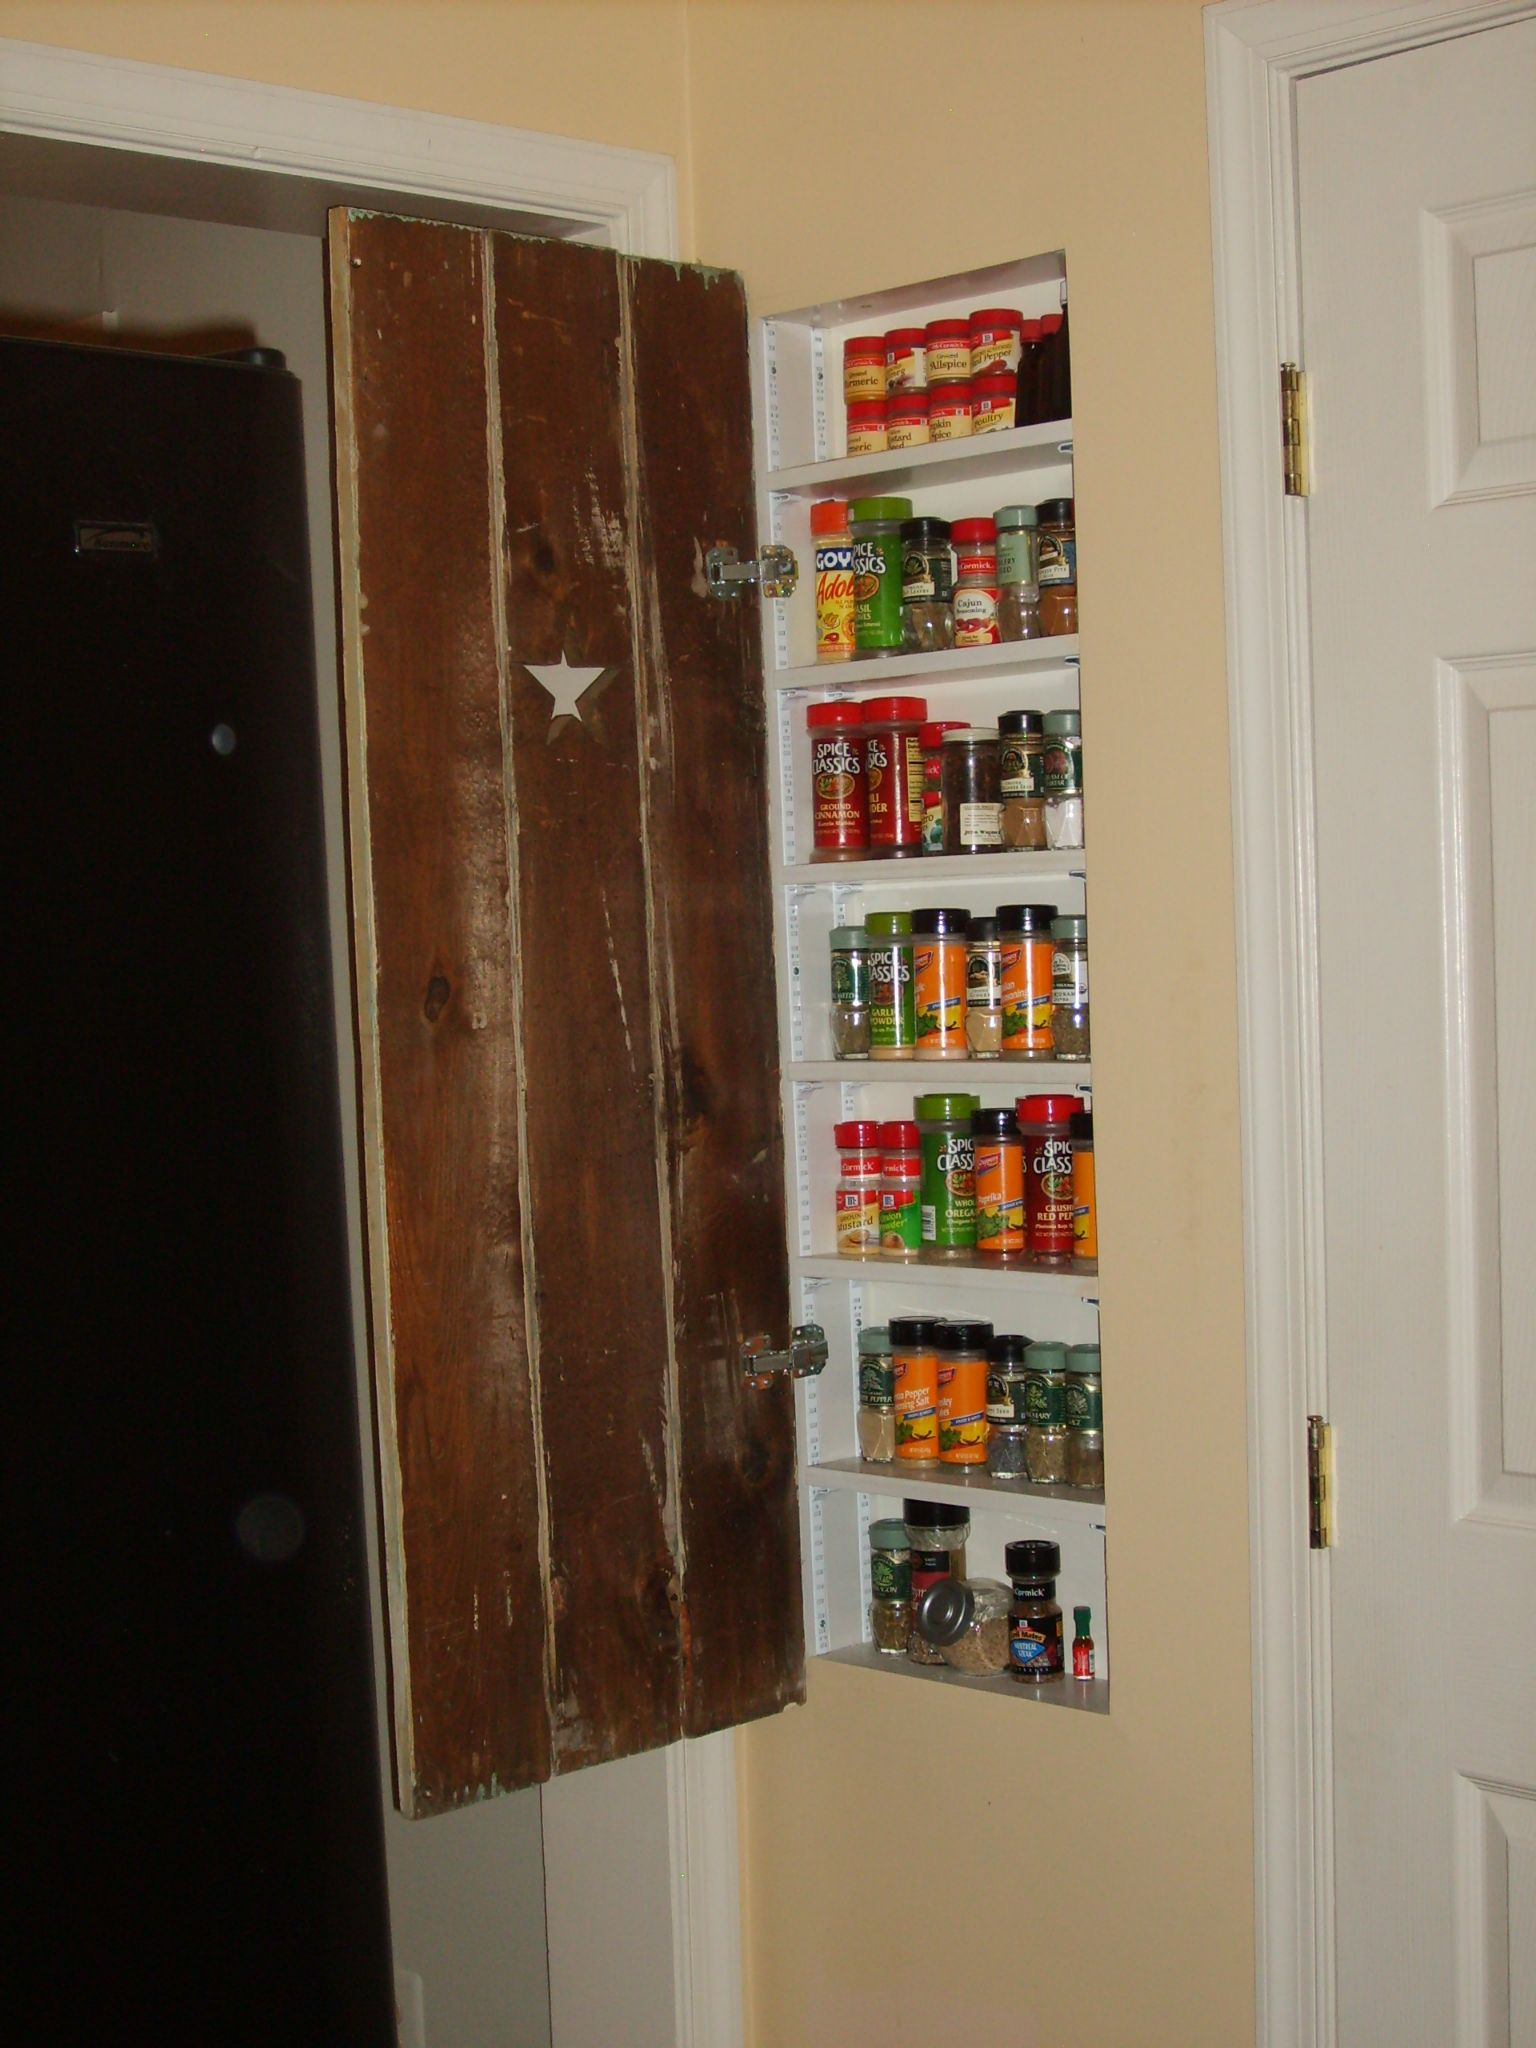 Good Use Of Space Between Studs In Wall Spice Rack For